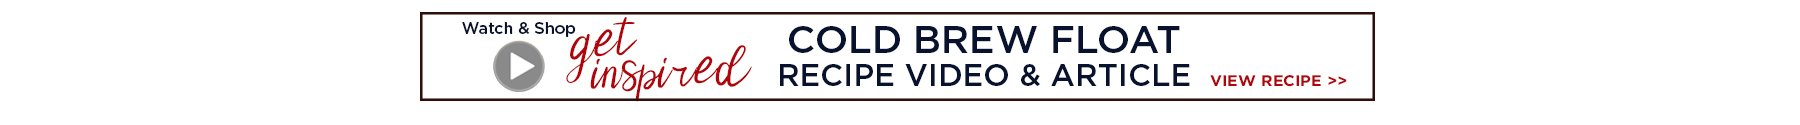 Get Inspired, Watch and Shop article: Cold Brew Float Recipe Video & Article